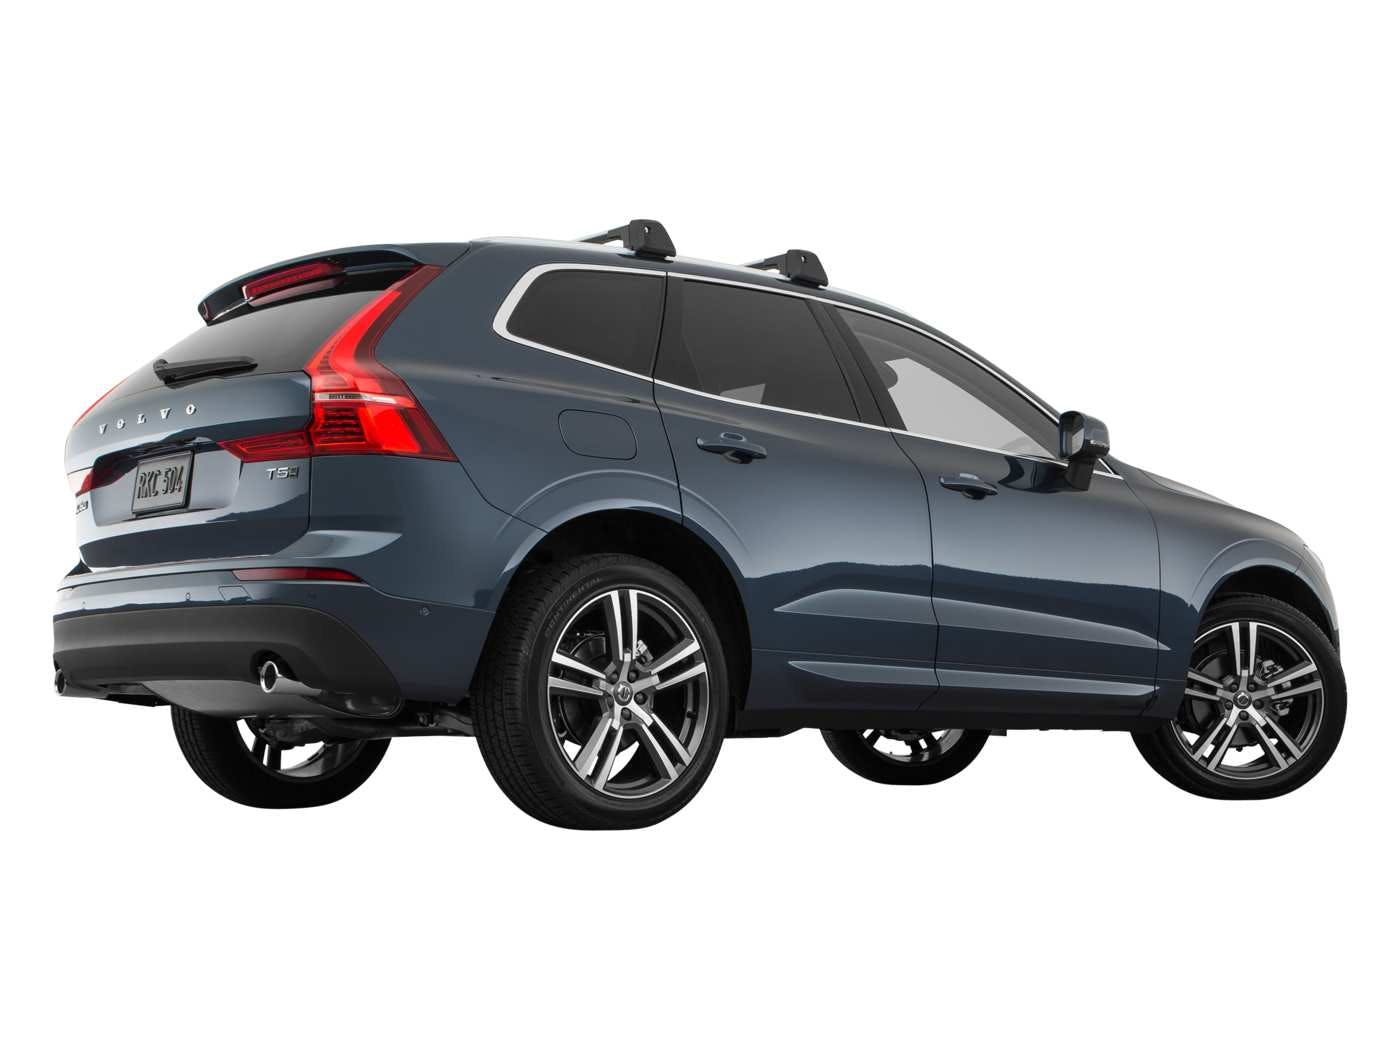 2019 Volvo Xc60 Exterior Back Low Wide View 2